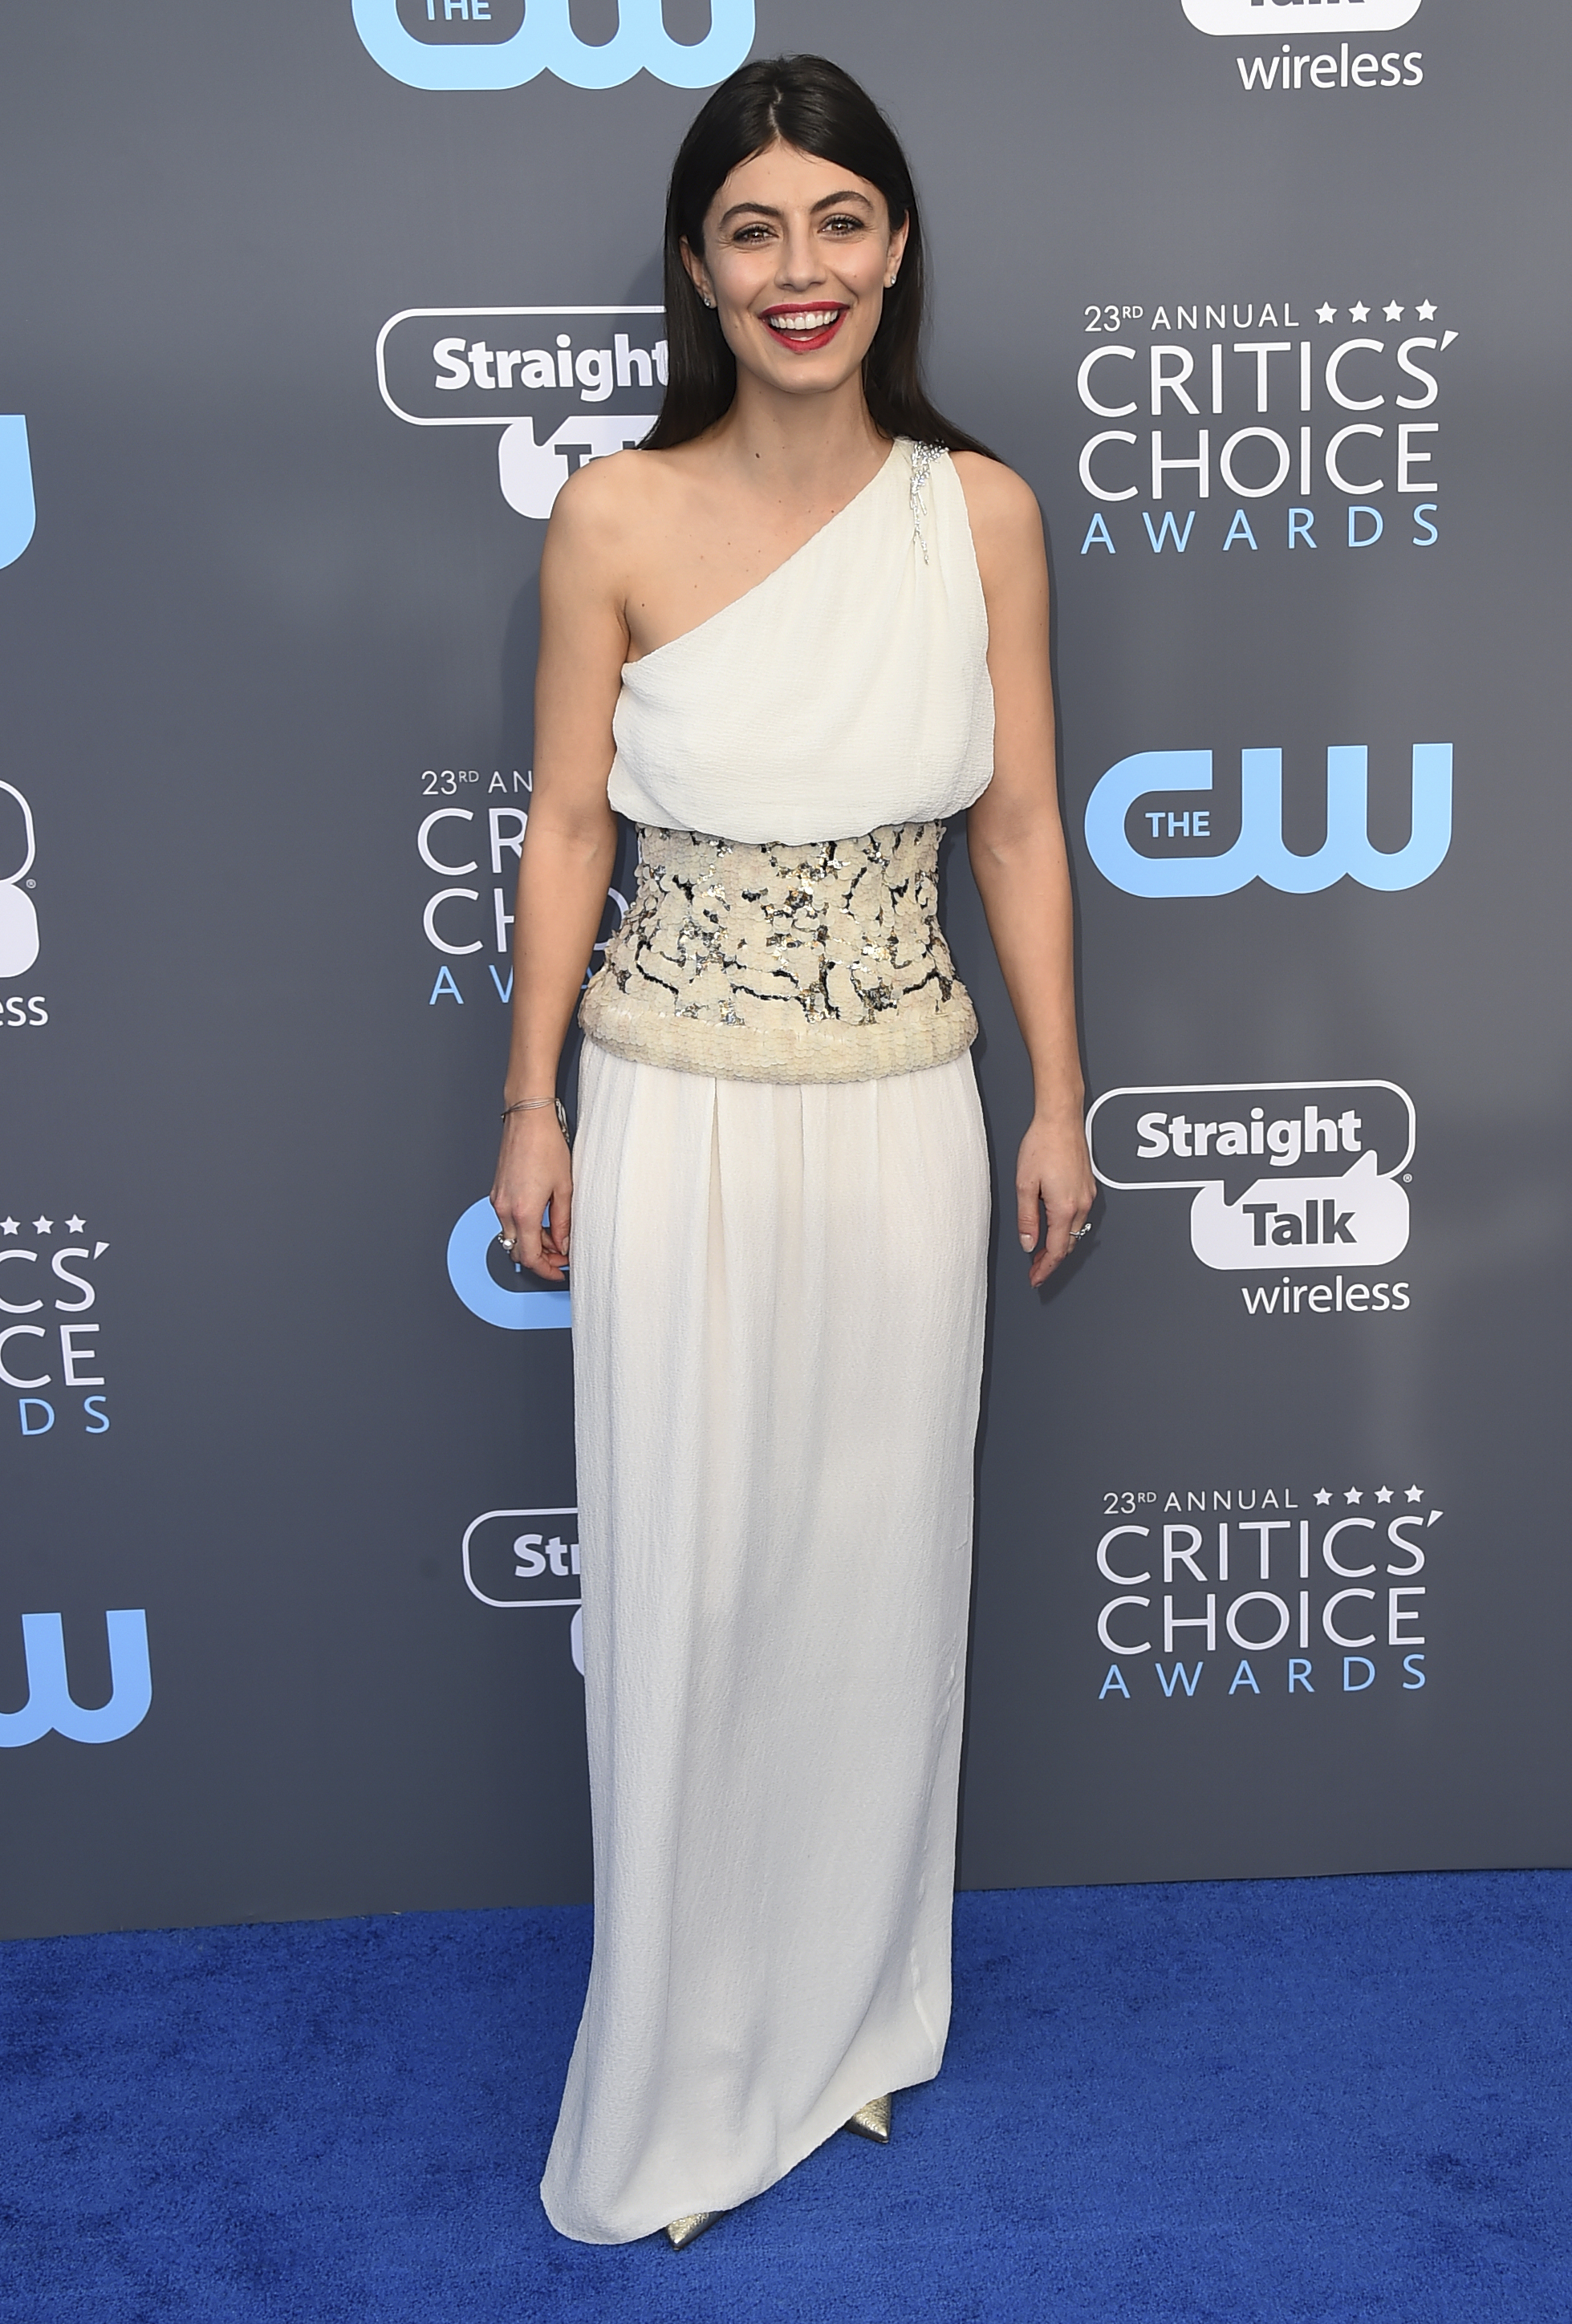 <div class='meta'><div class='origin-logo' data-origin='AP'></div><span class='caption-text' data-credit='Jordan Strauss/Invision/AP'>Alessandra Mastronardi arrives at the 23rd annual Critics' Choice Awards at the Barker Hangar on Thursday, Jan. 11, 2018, in Santa Monica, Calif.</span></div>